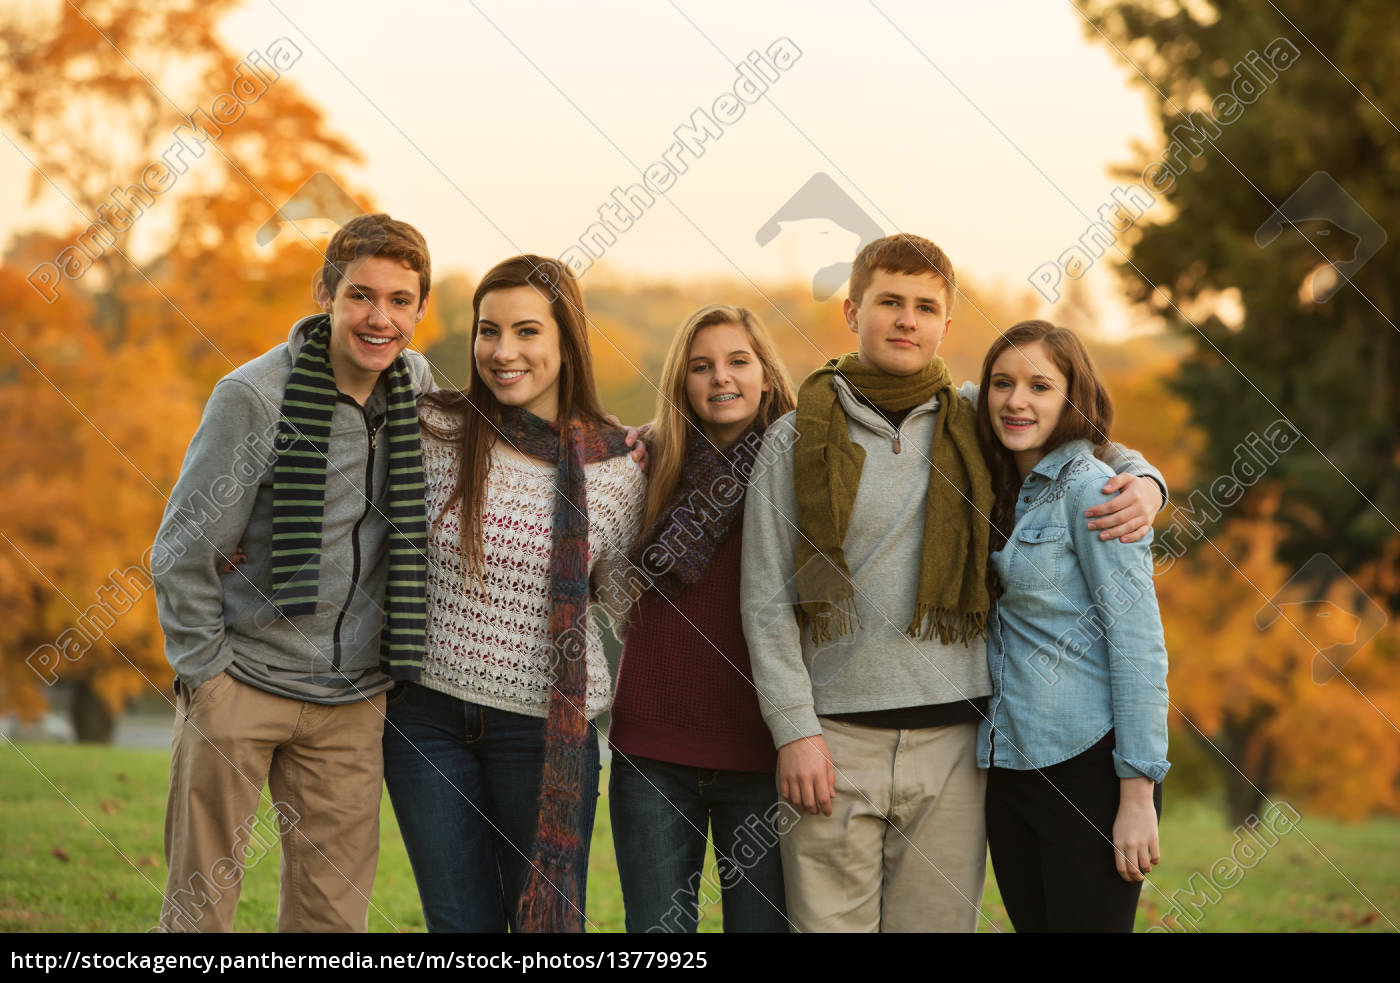 five, cute, teens, with, scarves - 13779925